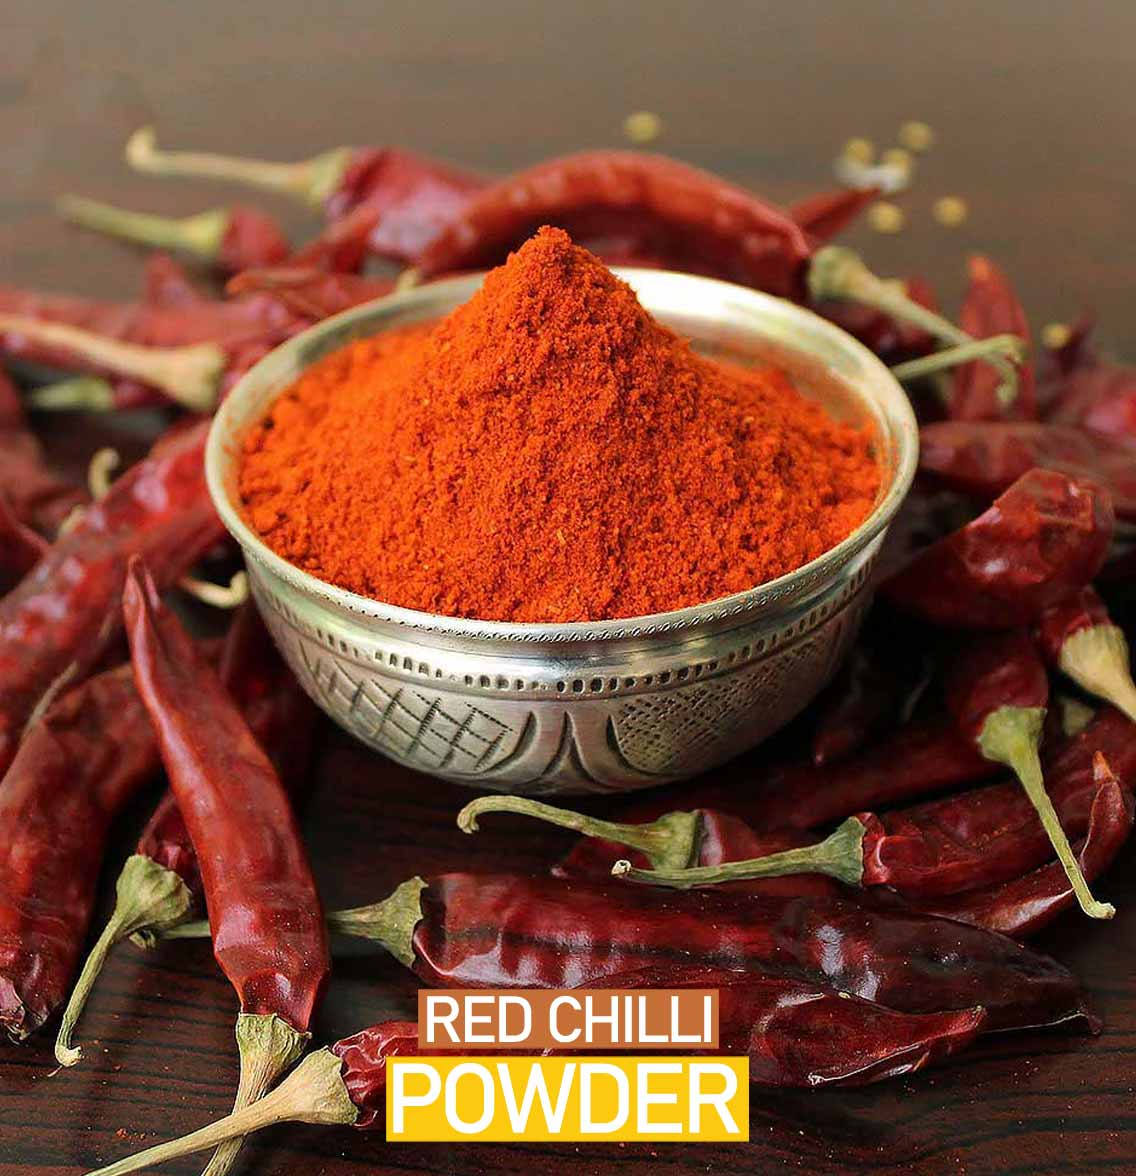 Red Chilli Powder And Its 10 Amazing Health Benefits